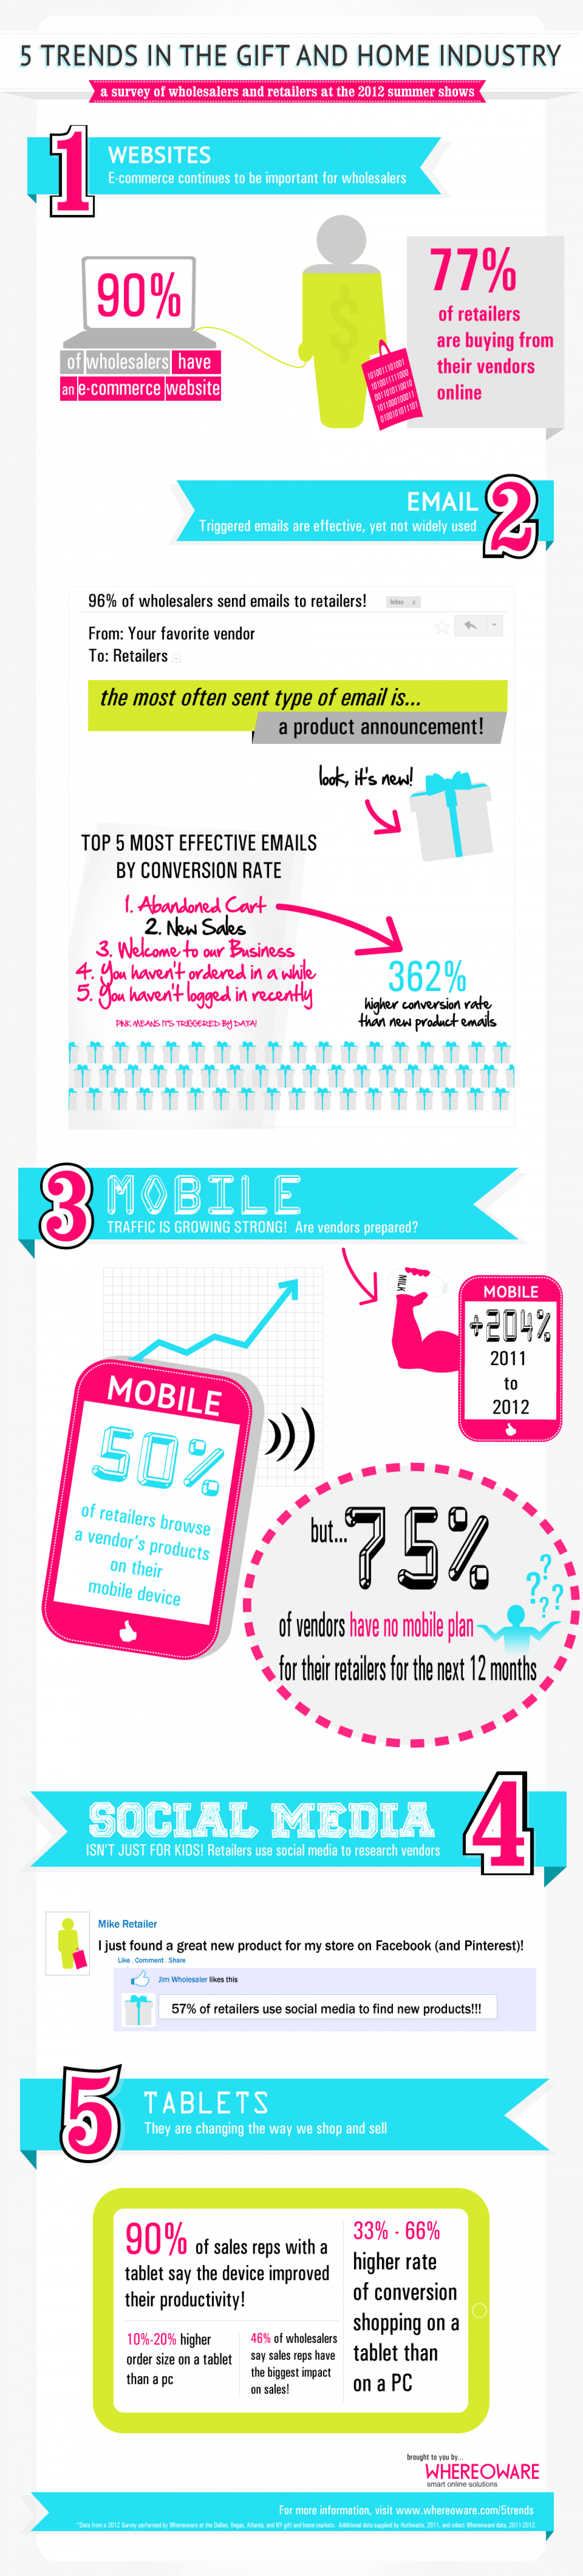 5 Trends in the Gift and Home Industry Infographic